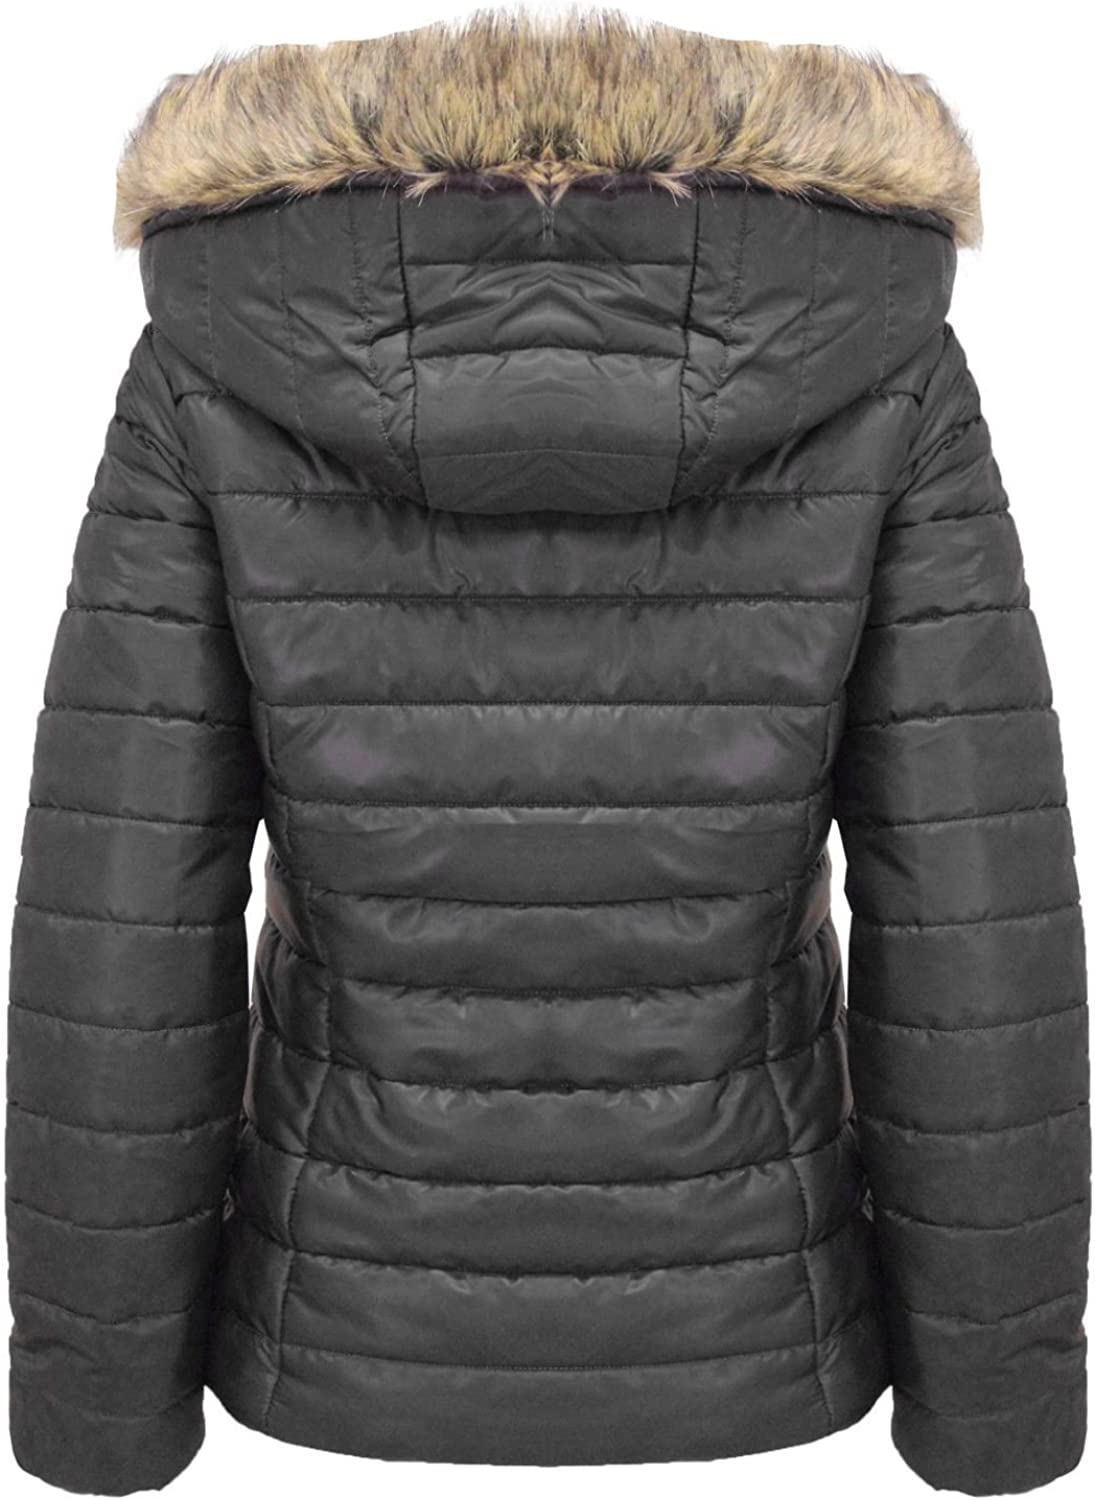 Kids Shiny Wet Look School Belted Short Quilted Hooded Jacket Coat